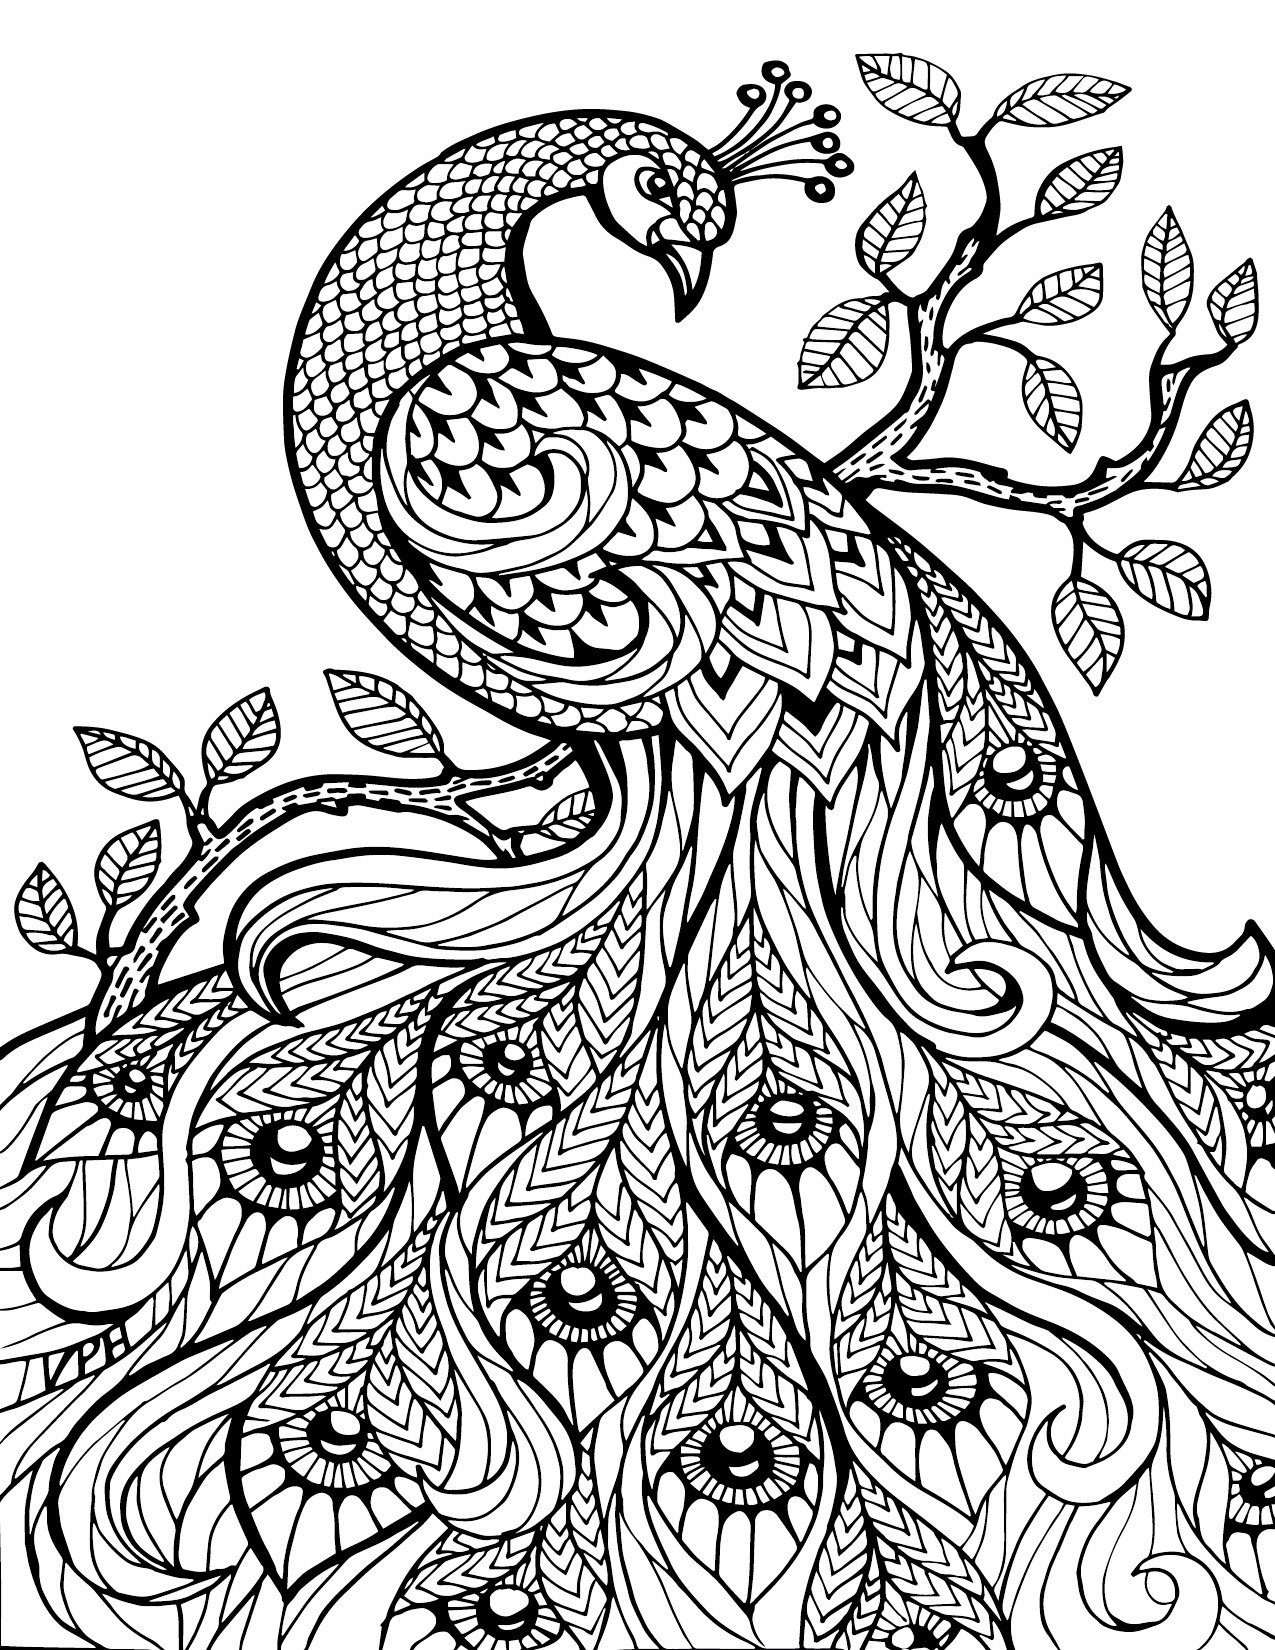 coloring book pages to print - animal coloring pages for adults